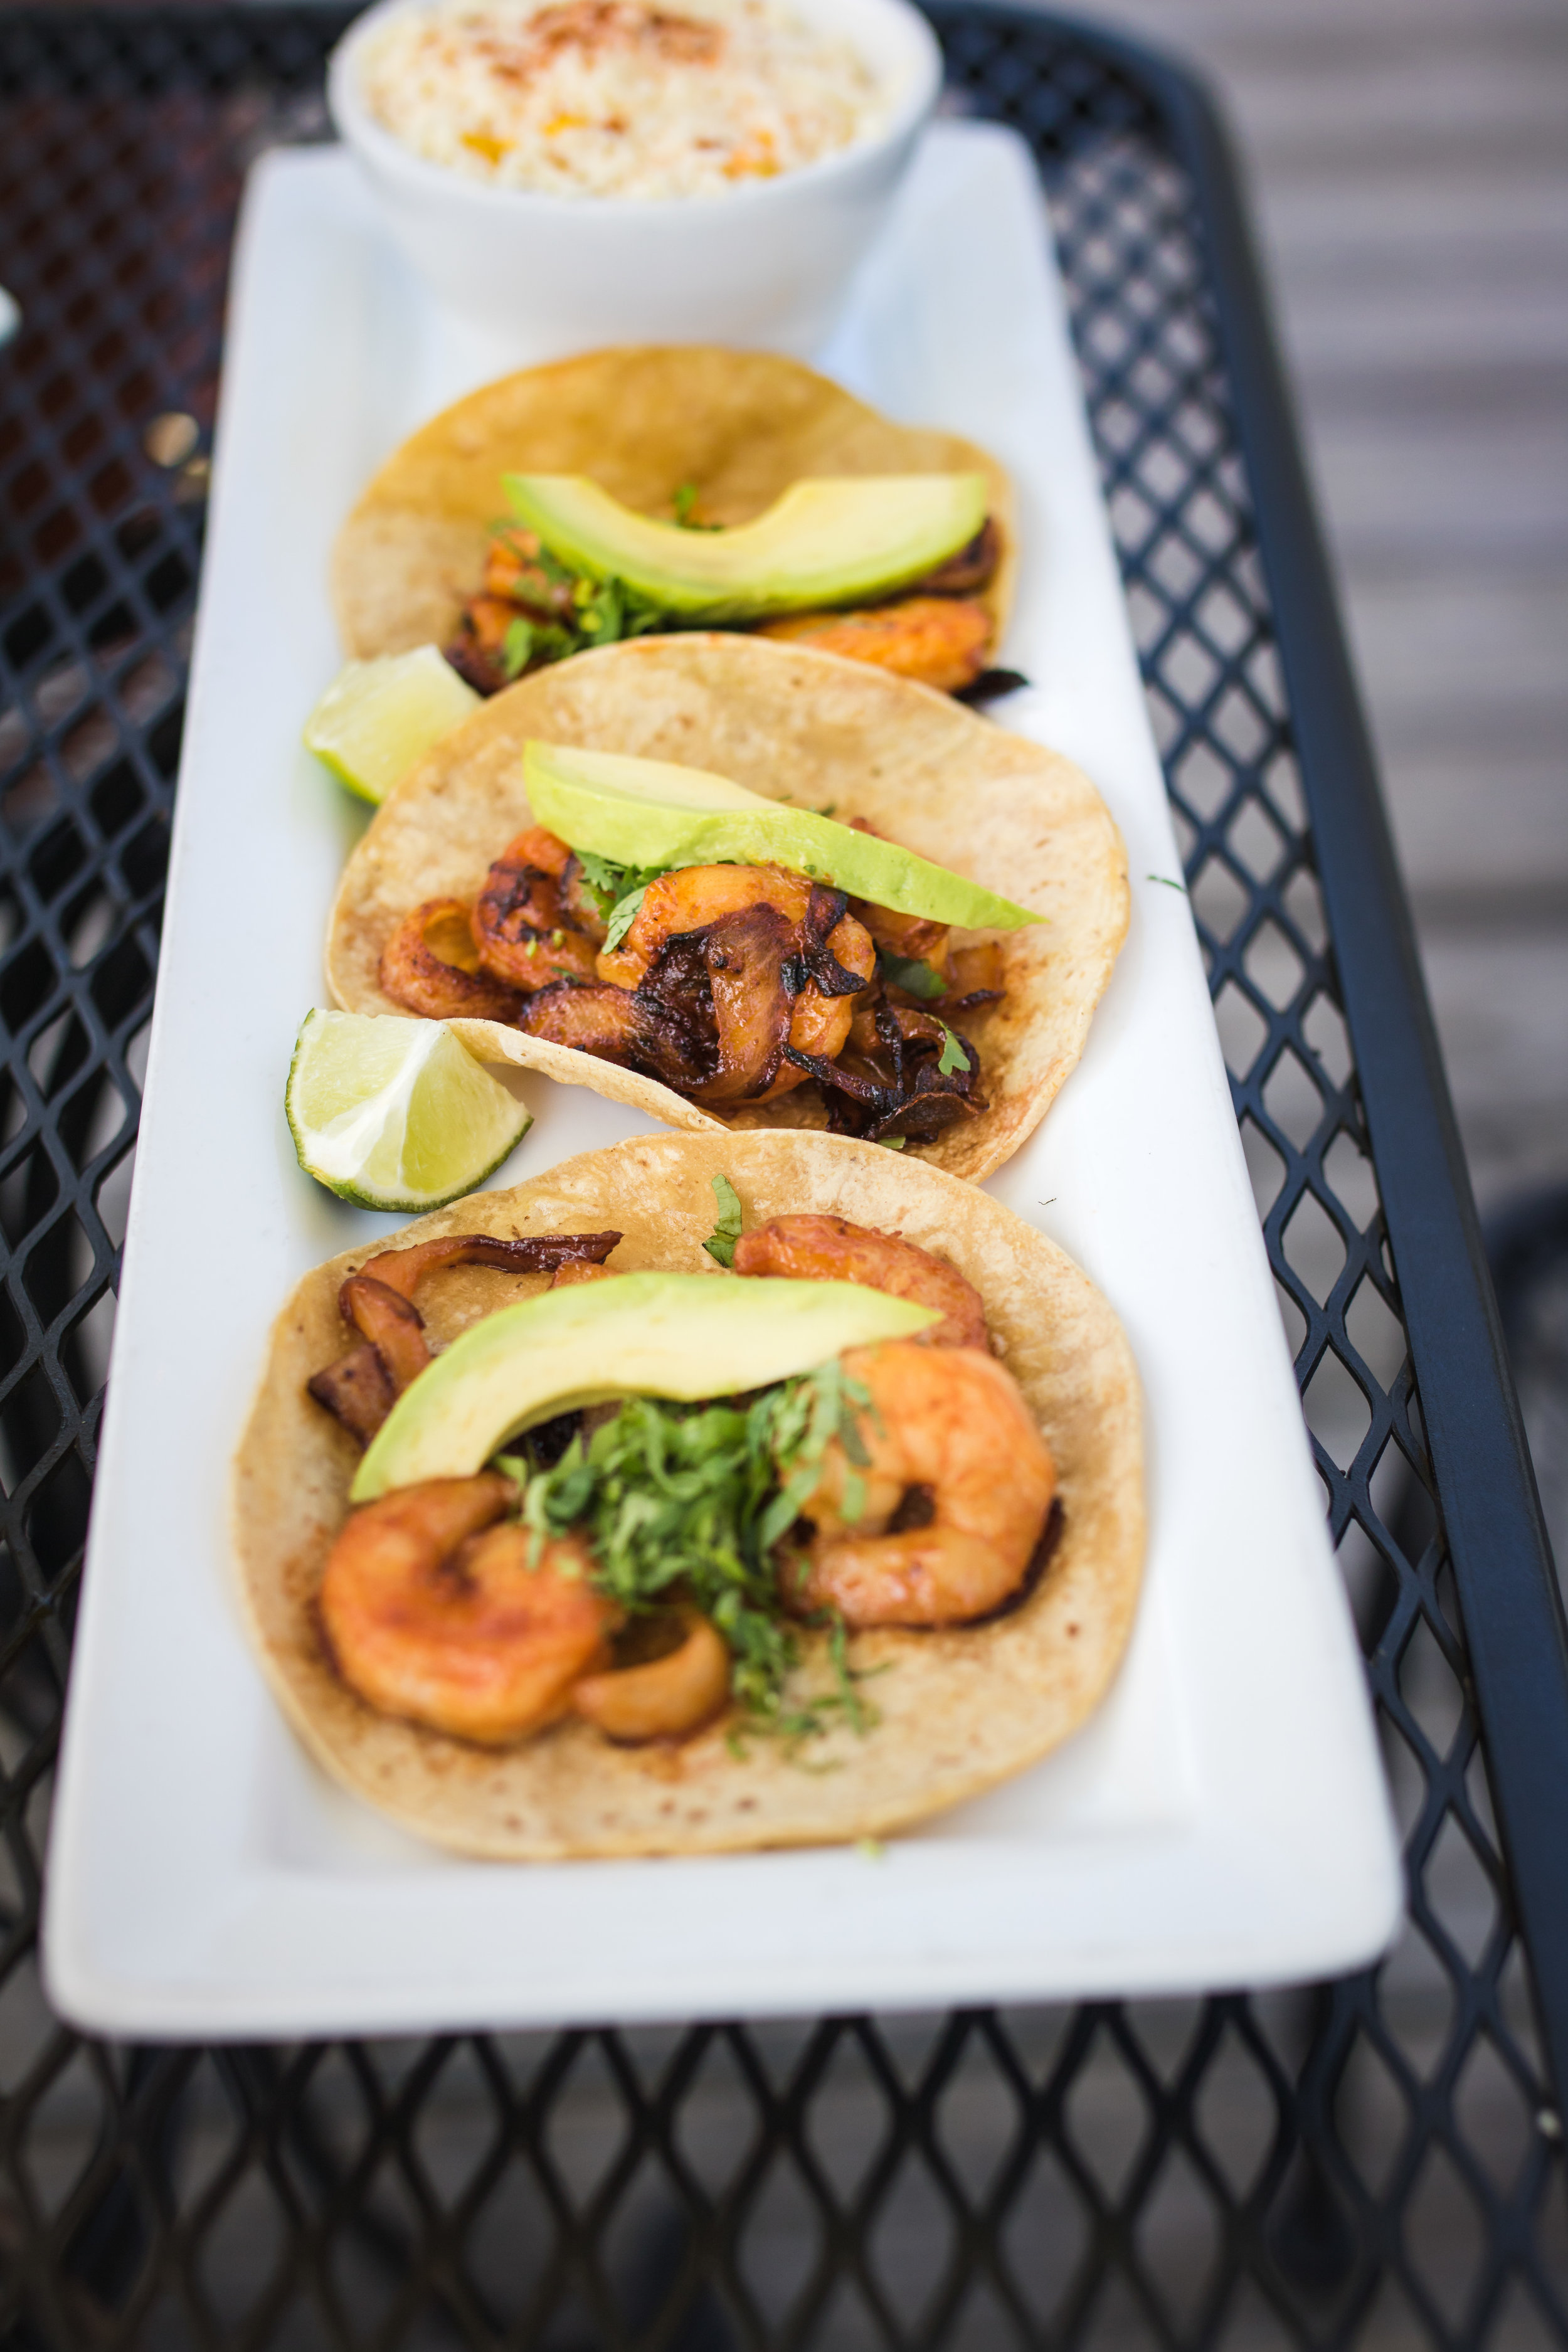 Camaron tacos with sauteed shrimp with grilled onions in chipotle sauce topped with cilantro and sliced avocado.